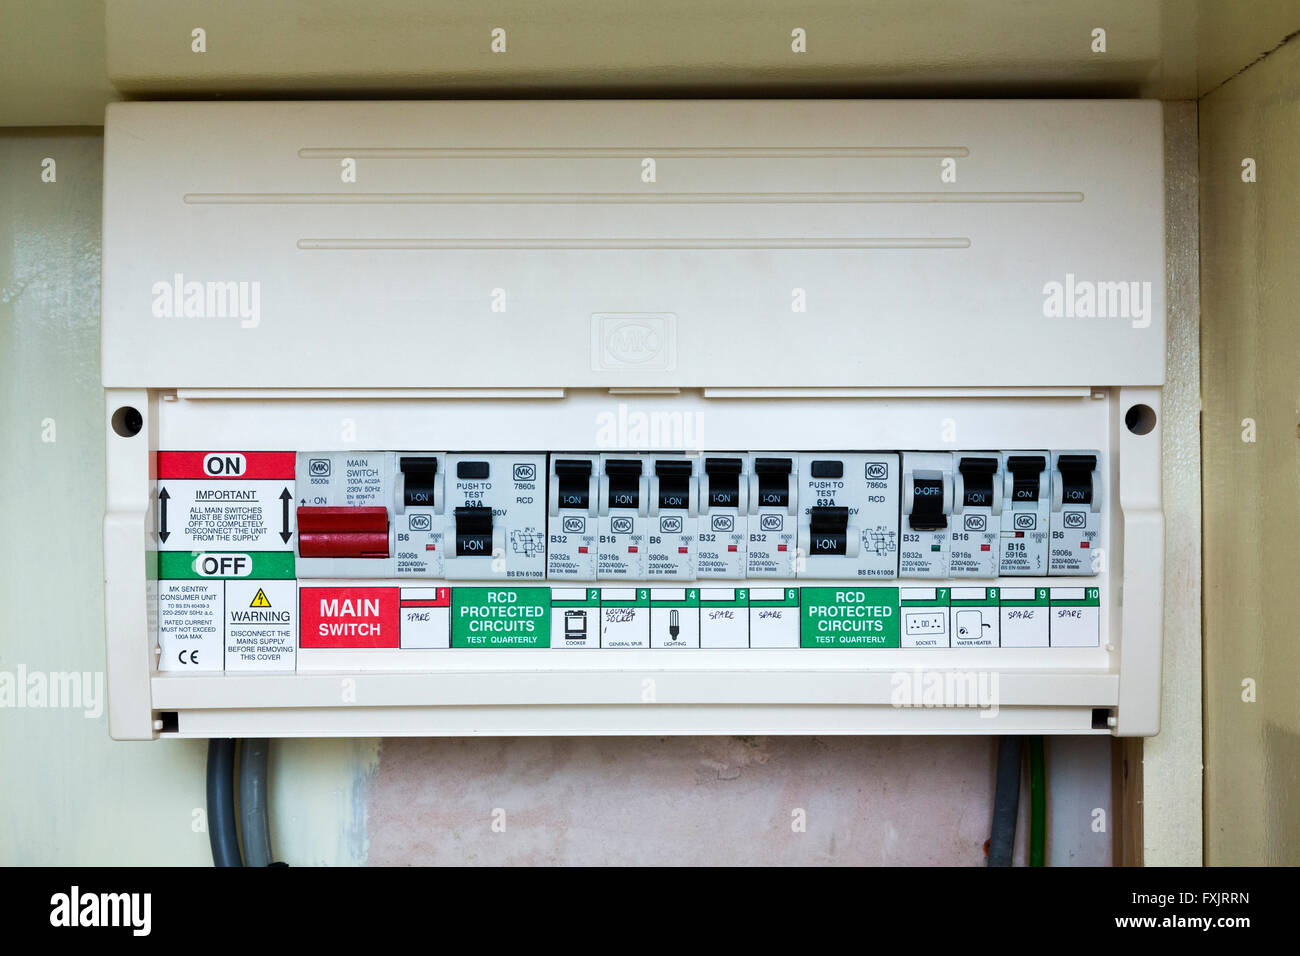 hight resolution of major fuse box wiring diagram dat major fuse box